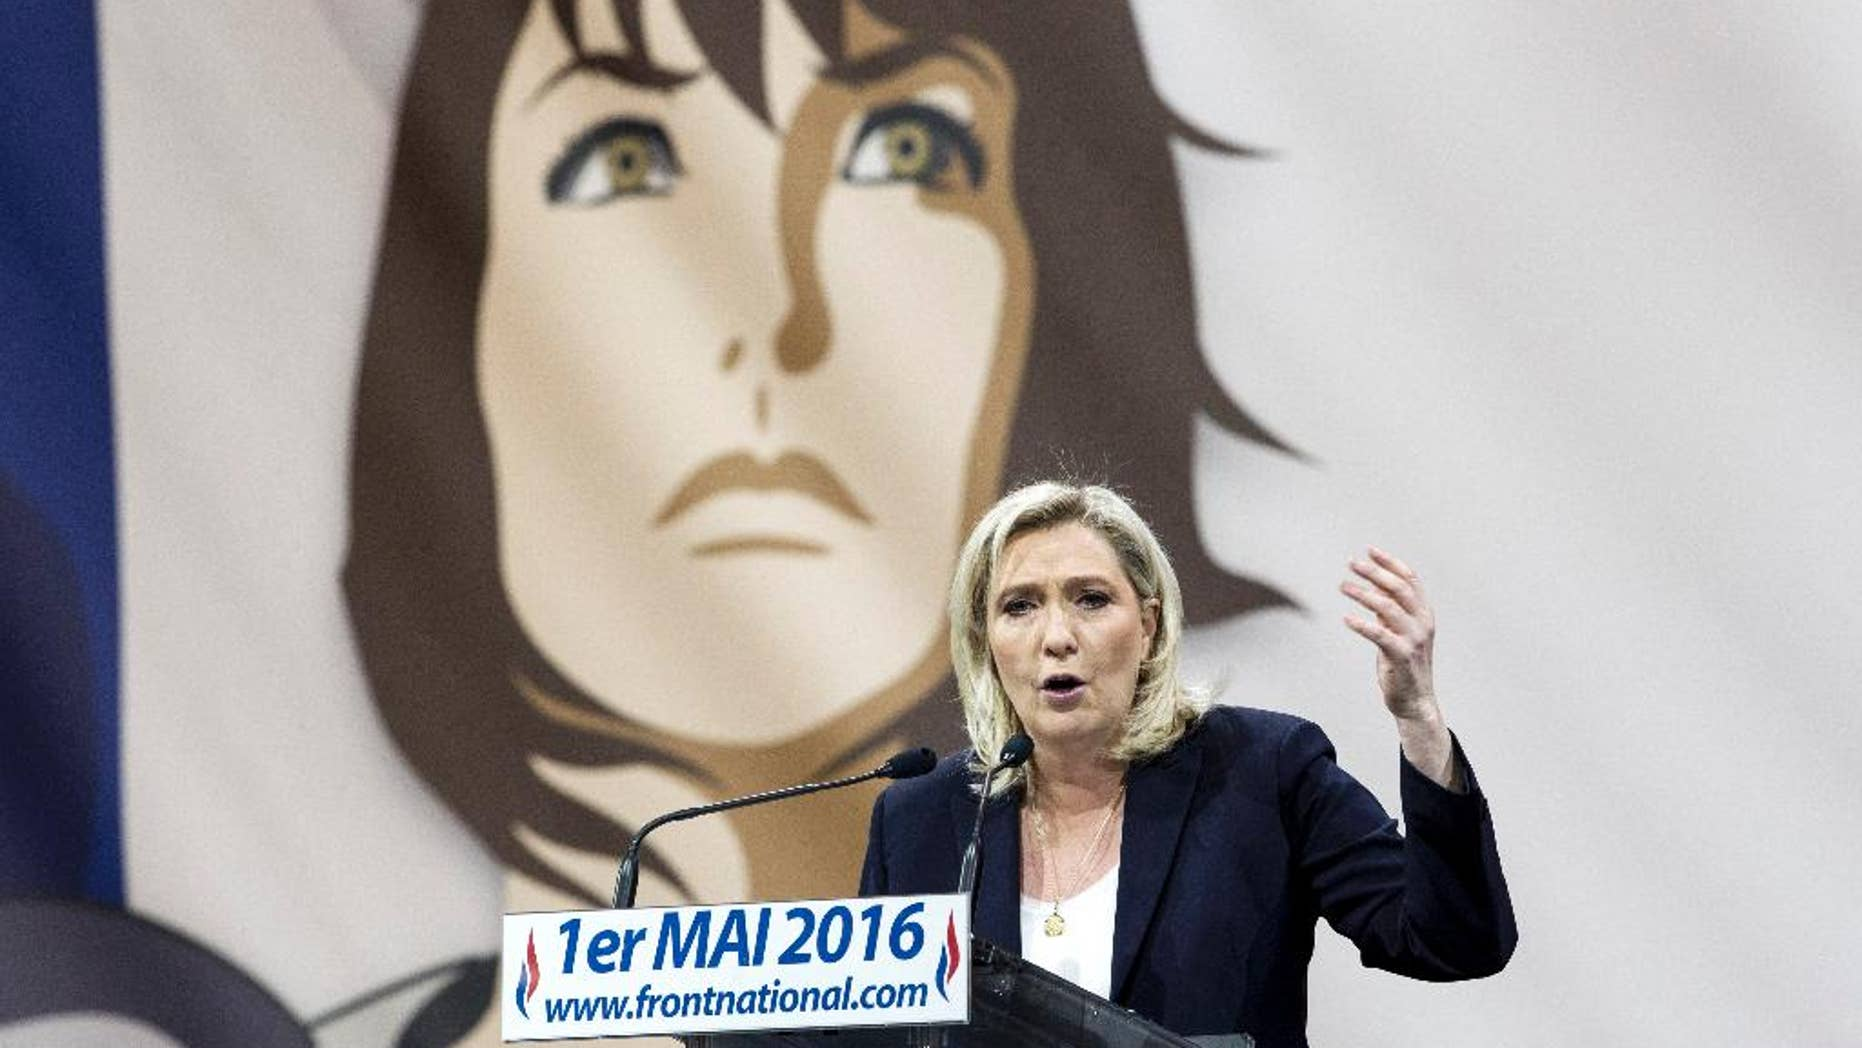 France's far-right National Front party leader Marine Le Pen addresses her supporters as part of a May Day party lunch in Paris, France, Sunday, May 1st, 2016. On background is a portrait of Joan of Arc — the party's patron saint . Jean-Marie Le Pen, a founder and the decades-long leader of France's far-right National Front, declared Sunday that his daughter, Marine Le Pen, the party president who has expelled him, will lose next year's presidential race if she fails to unify the party. (AP Photo/Kamil Zihnioglu)